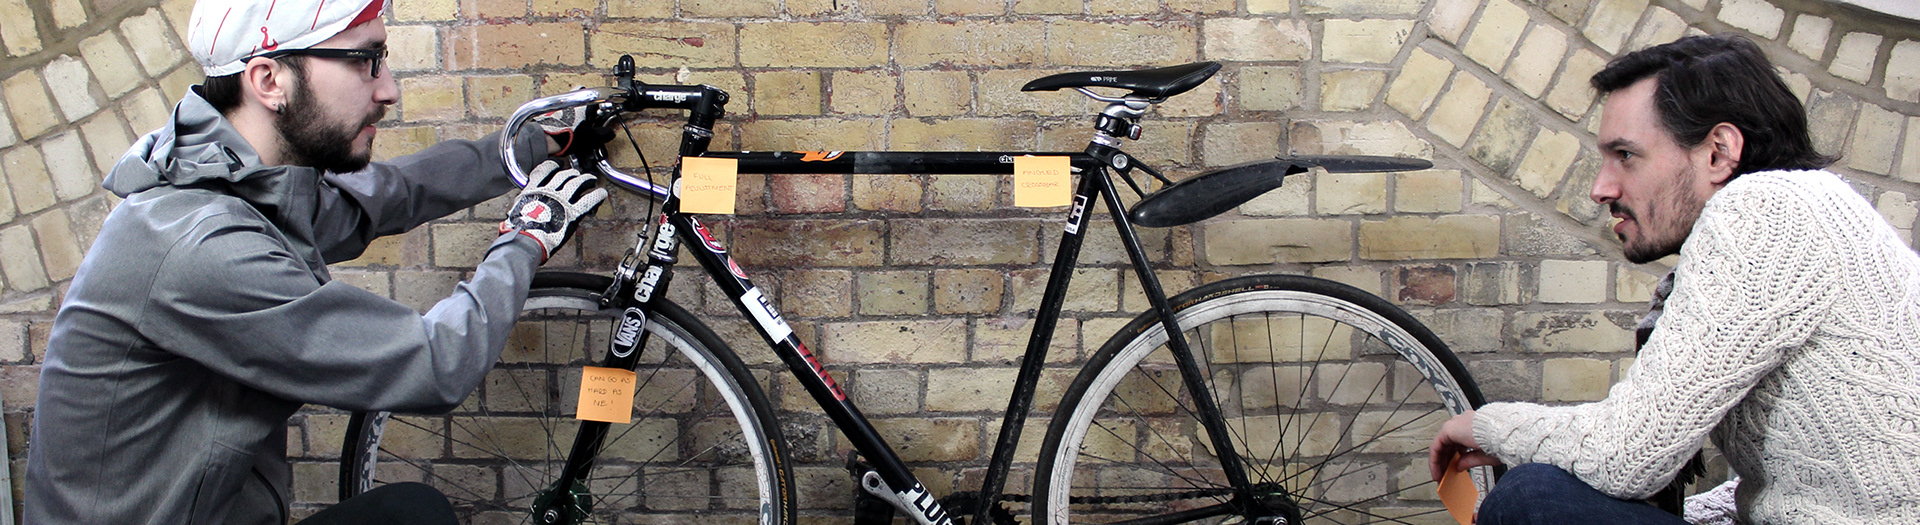 Curventa - User insight research - cycling products - industrial designer - cyclist - bike